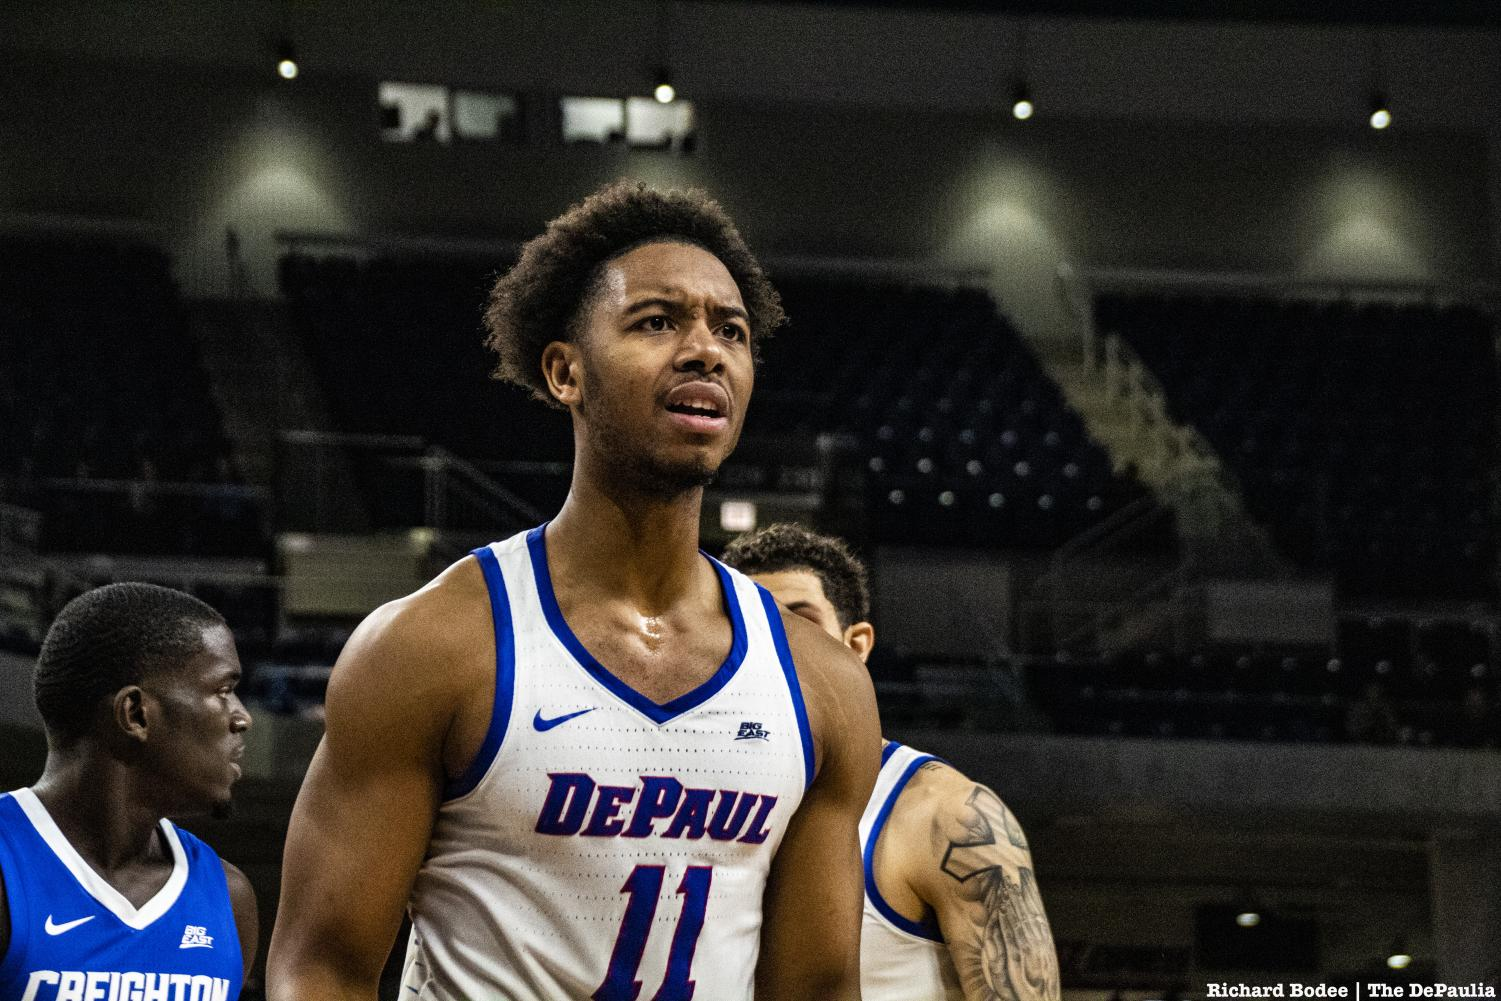 DePaul senior guard Eli Cain reacts to an unfavorable call in the first half of the Blue Demons 79-67 loss against Creighton Wednesday. Richard Bodee I The DePaulia.